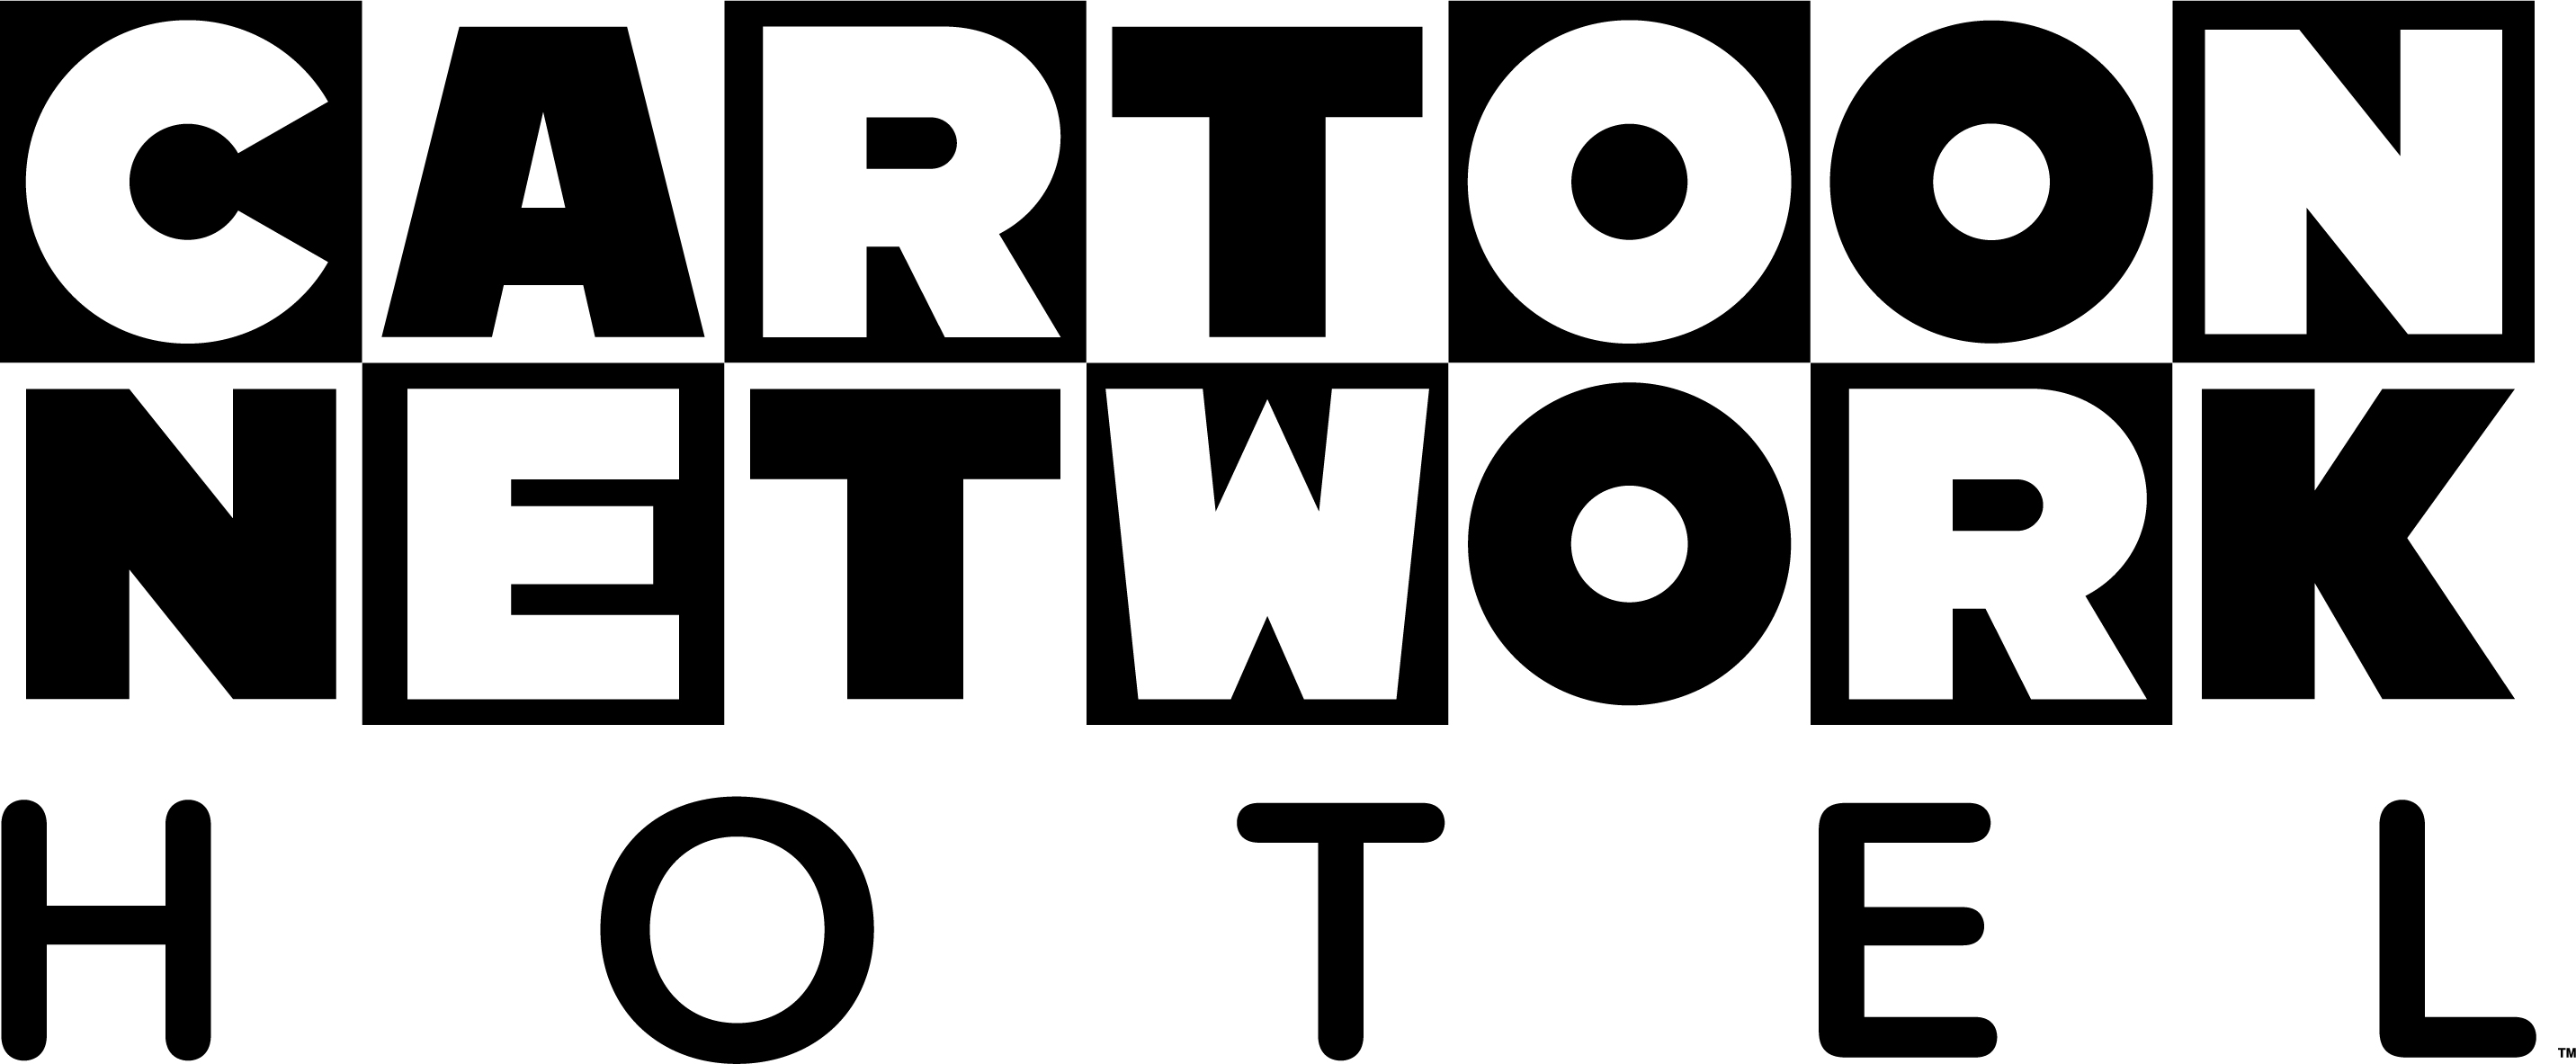 Cartoon Network Hotel logo with white background